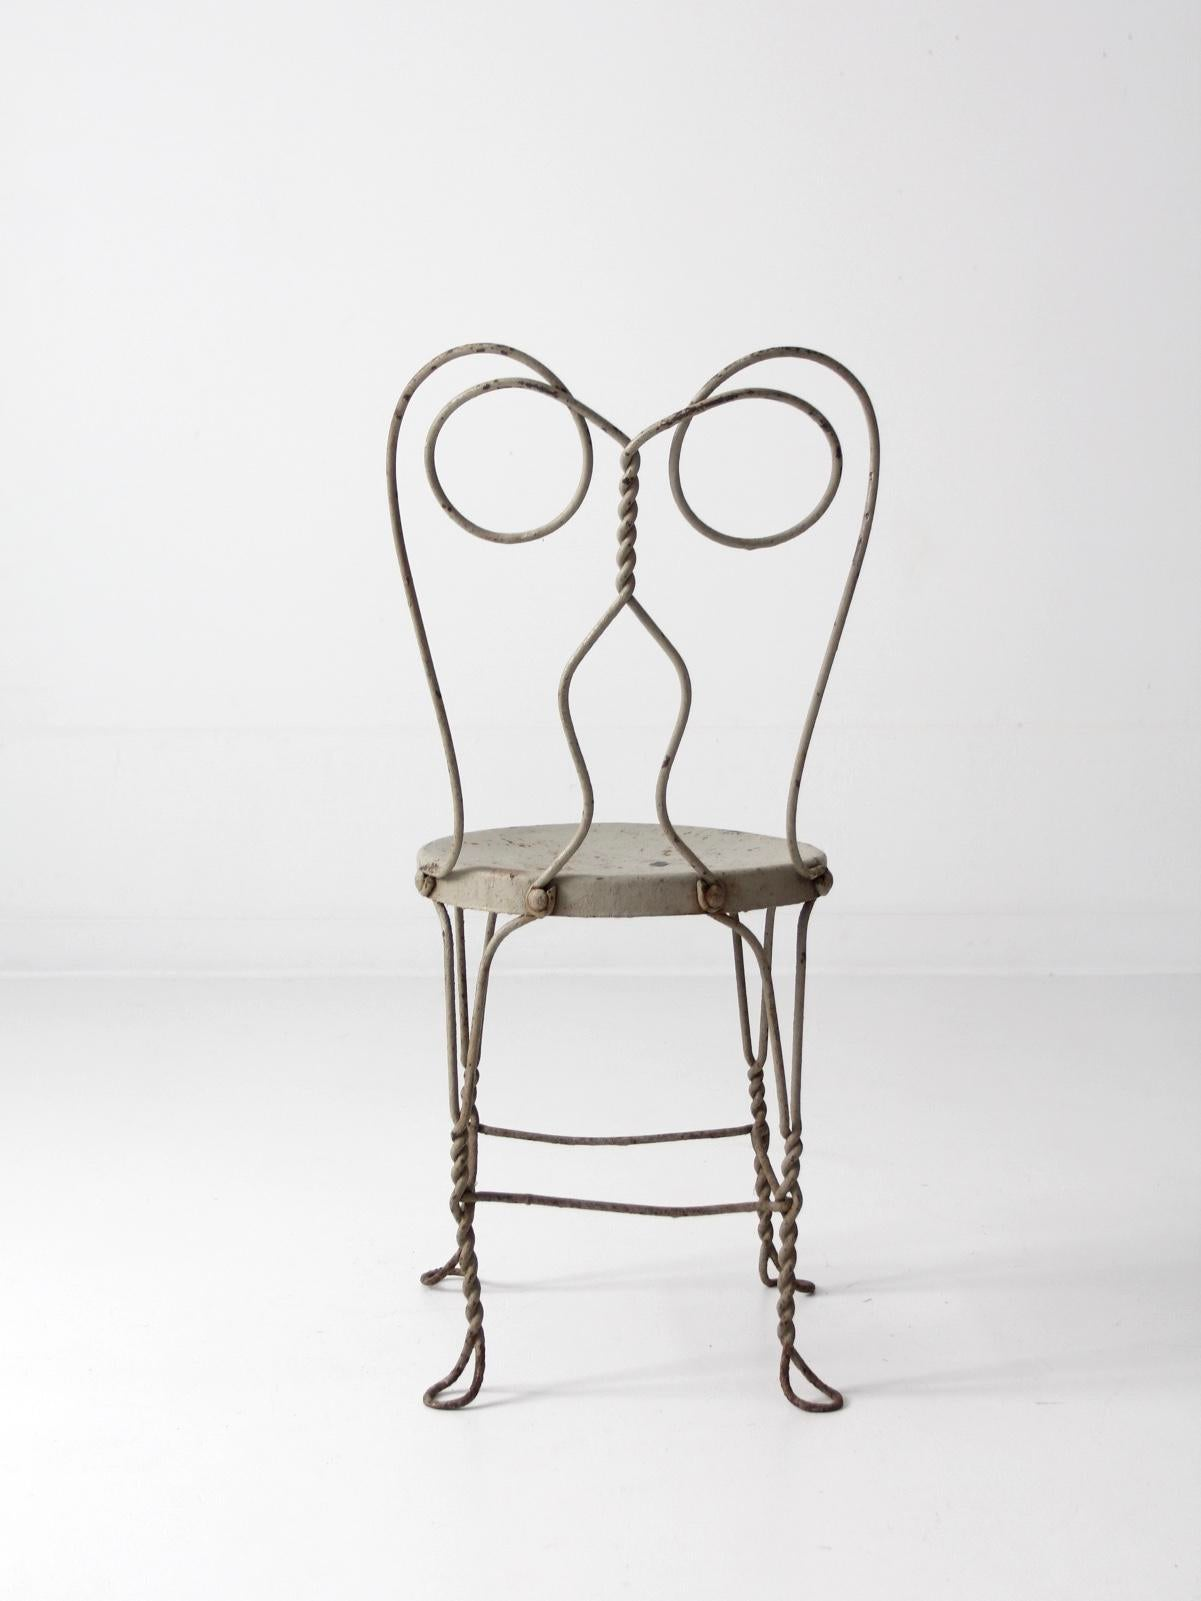 Etonnant A Vintage Ice Cream Parlor Chair. The Gainsboro (light Gray) Metal Chair  Features